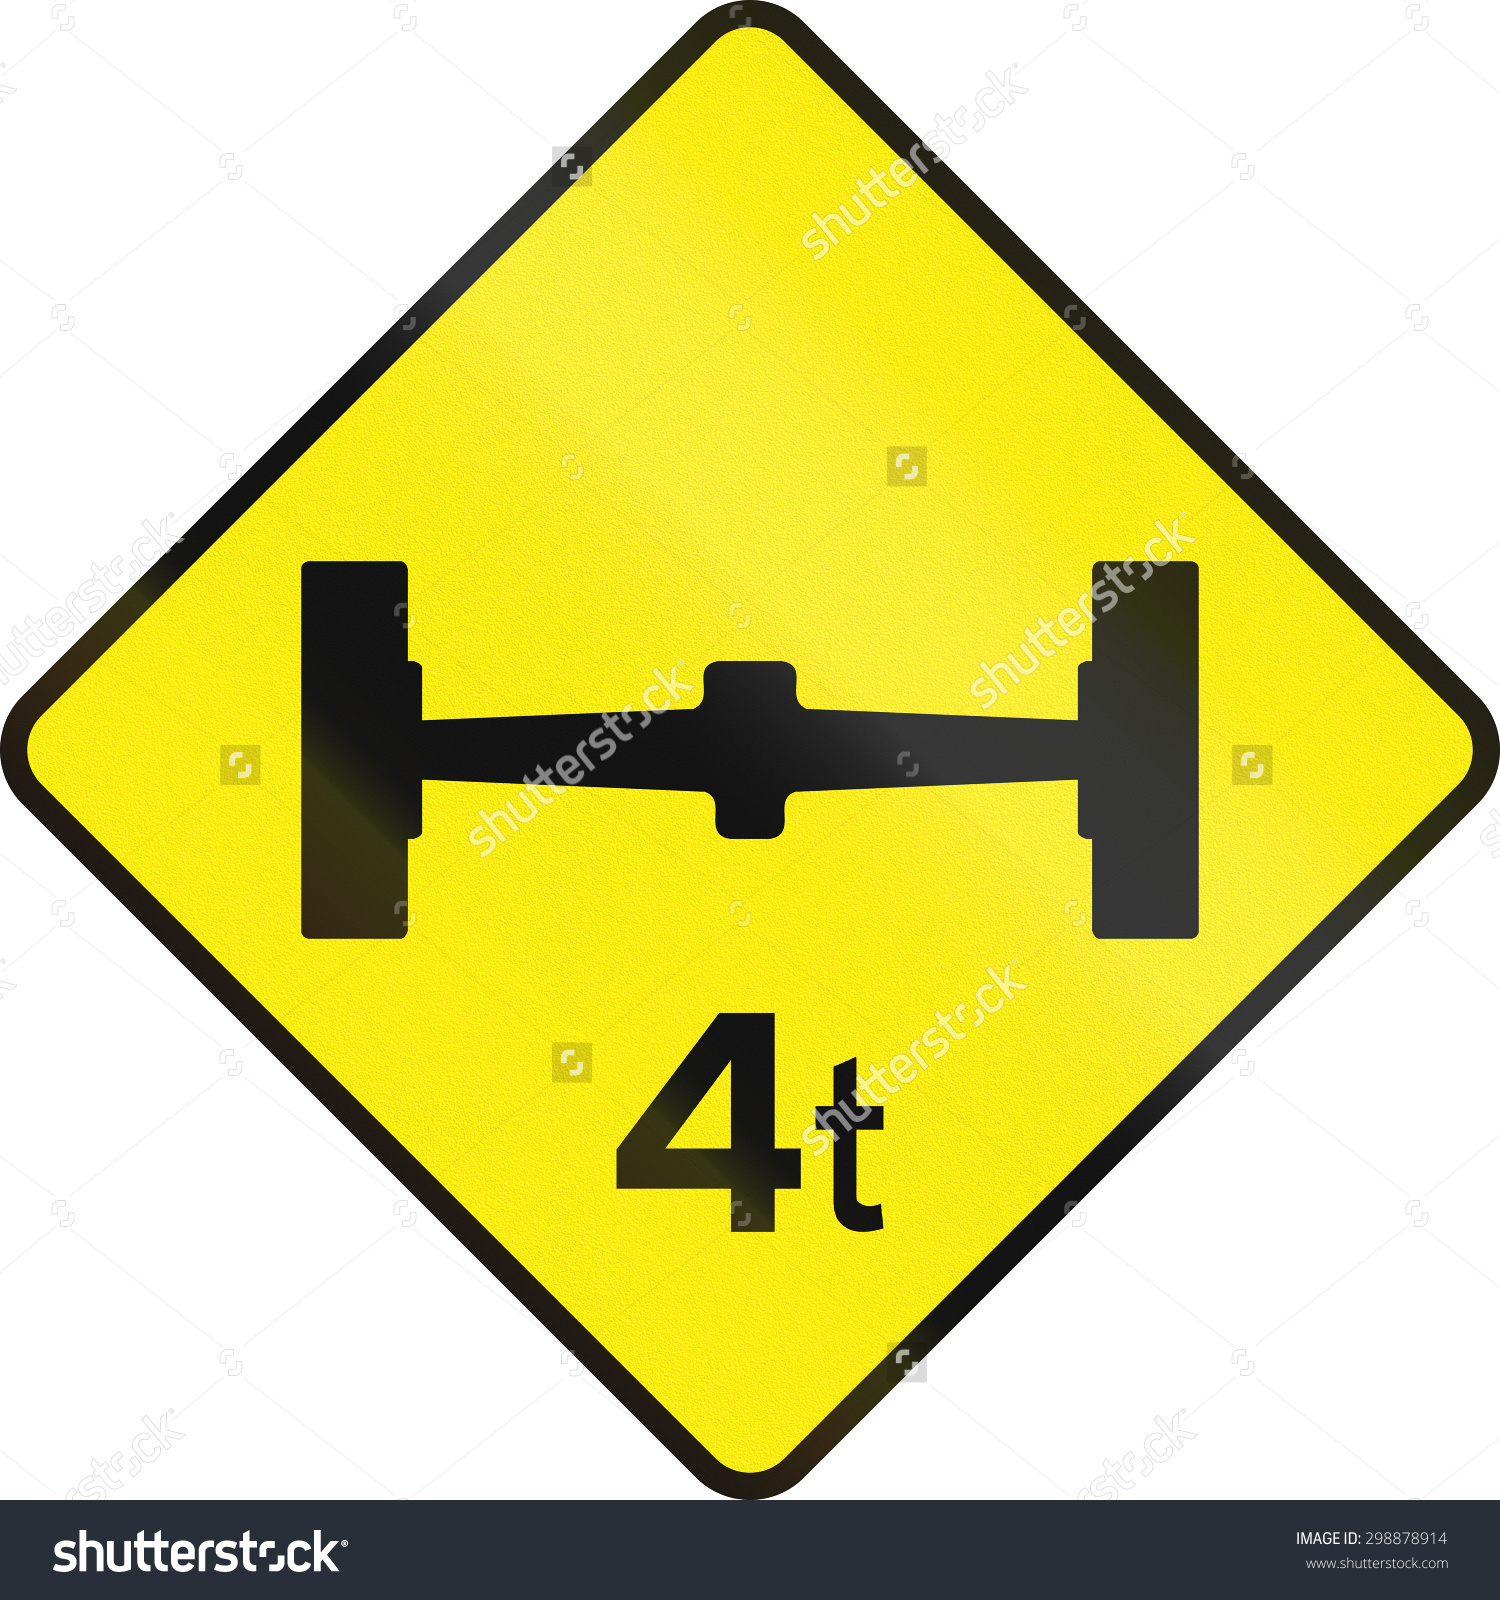 Axle Load Limits : Axle load limit clipart clipground